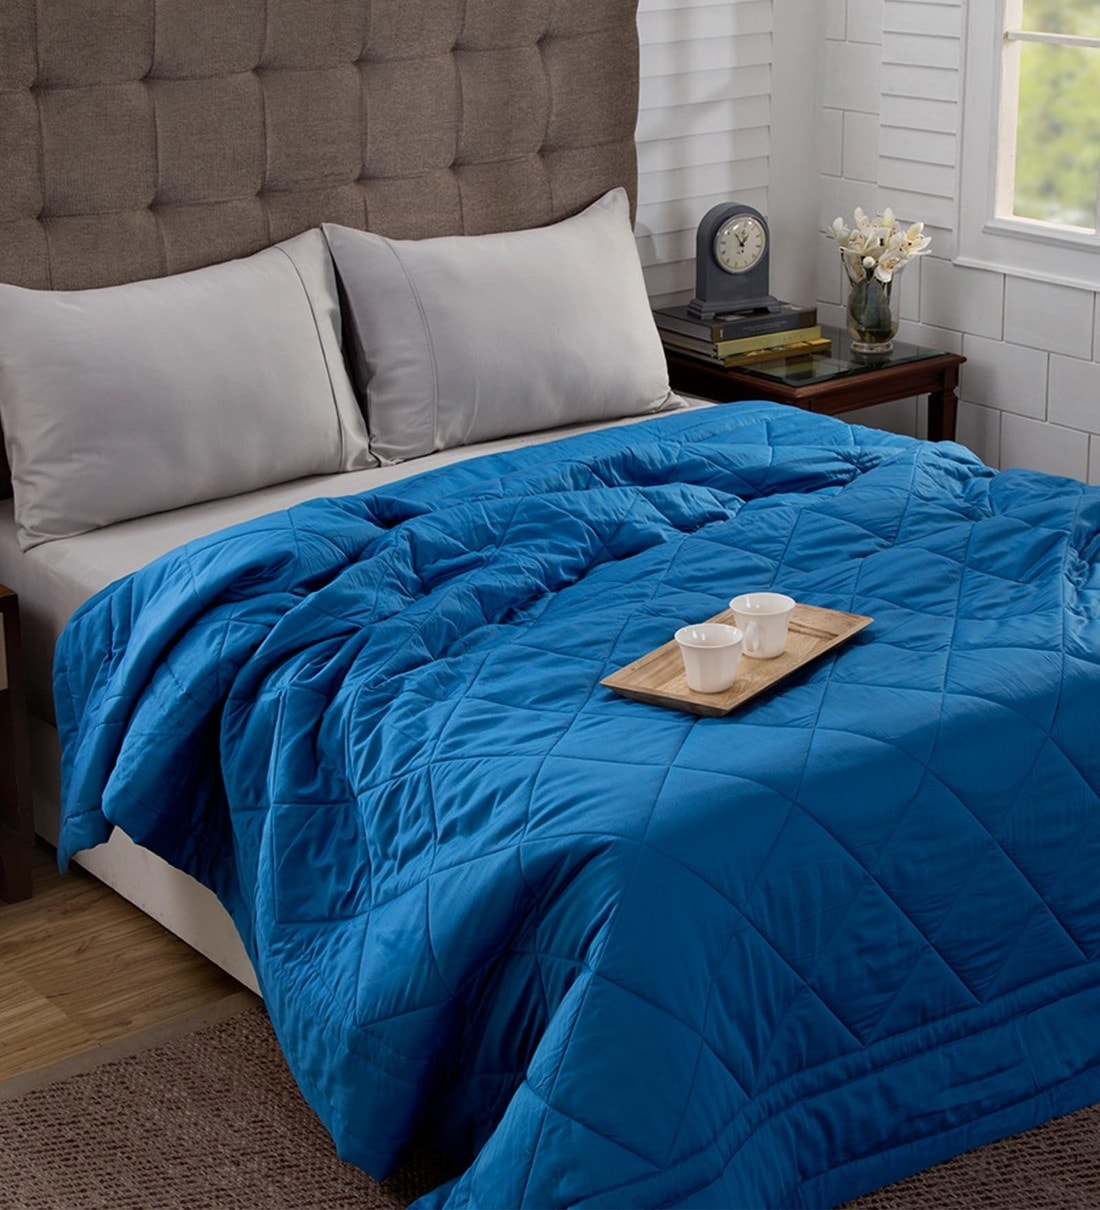 Buy Aura 100 Cotton 120 Gsm Ac Room Queen Bed Quilt By Maspar Online Abstract Double Bed Quilts Comforters Bed Linen Furnishings Pepperfry Product